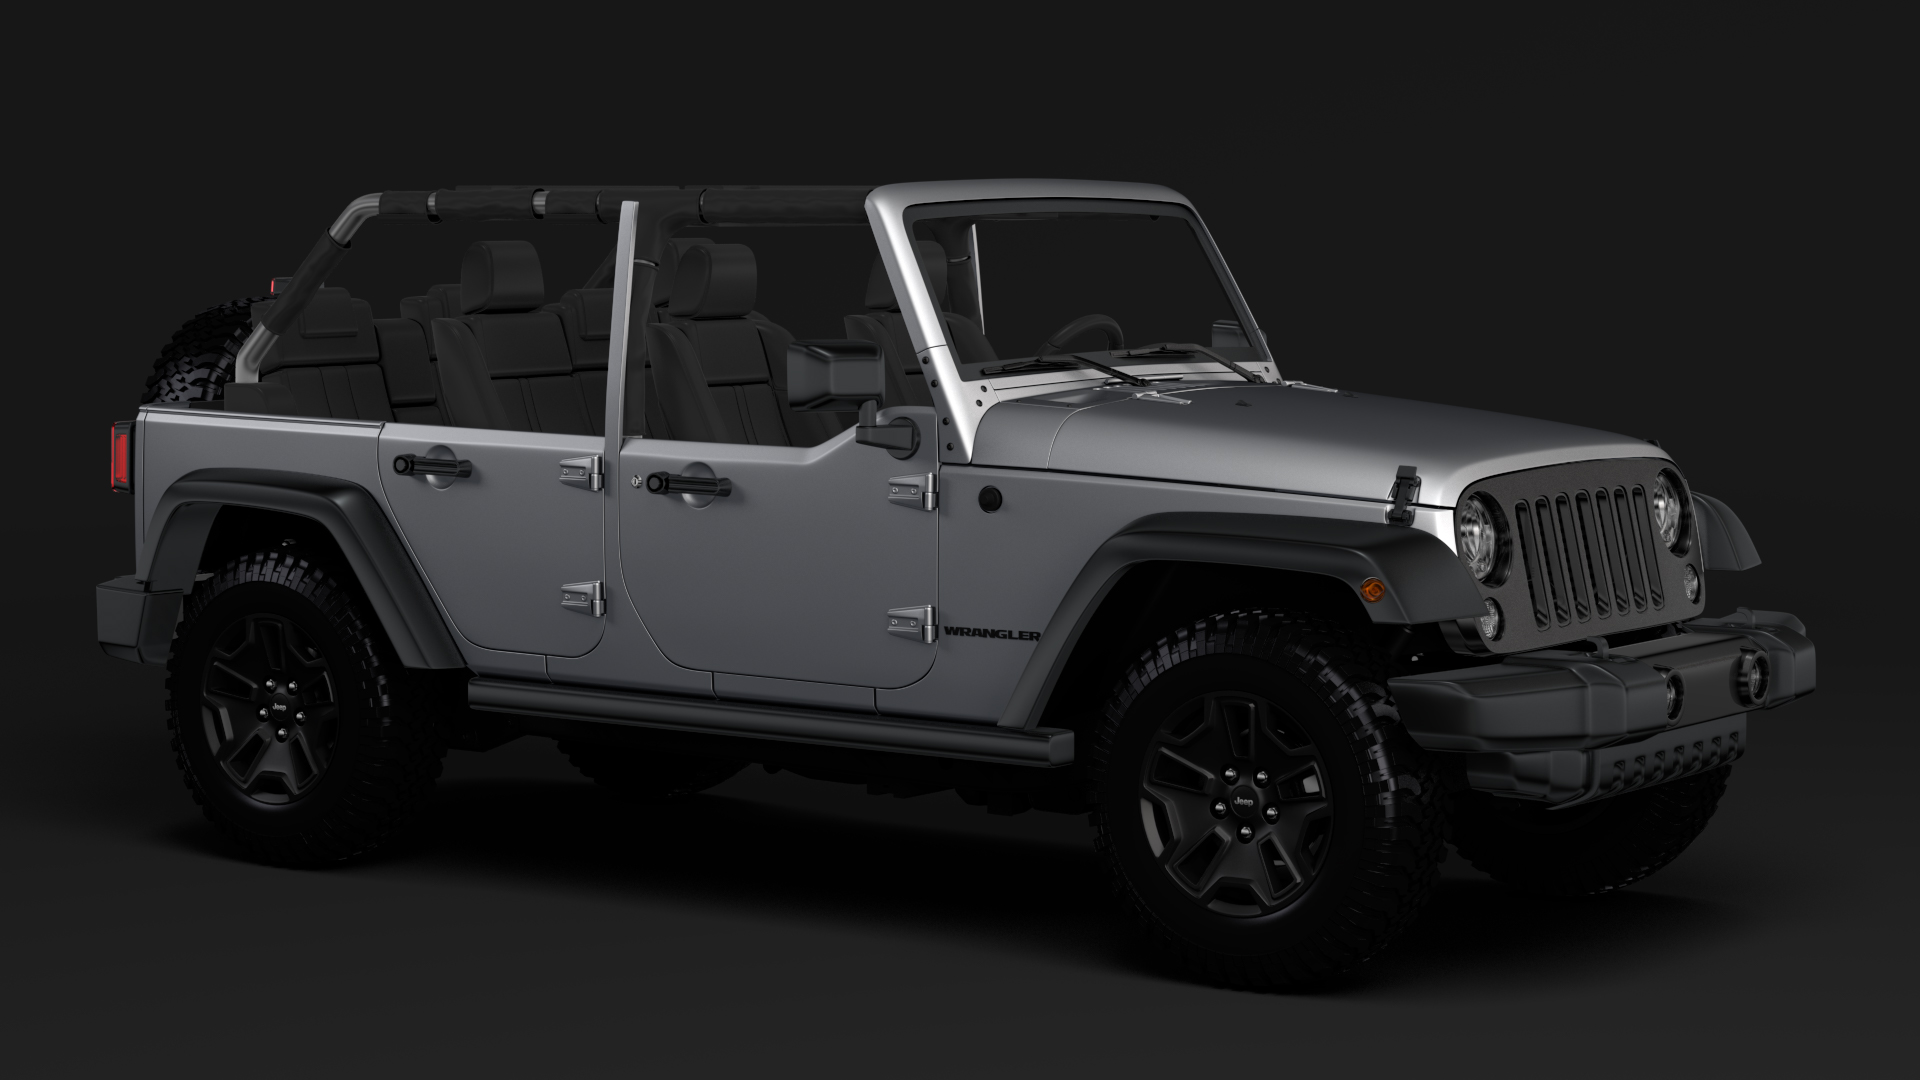 jeep wrangler unlimited willys wheeler jk 2017 3d model max fbx c4d lwo ma mb hrc xsi obj 276756